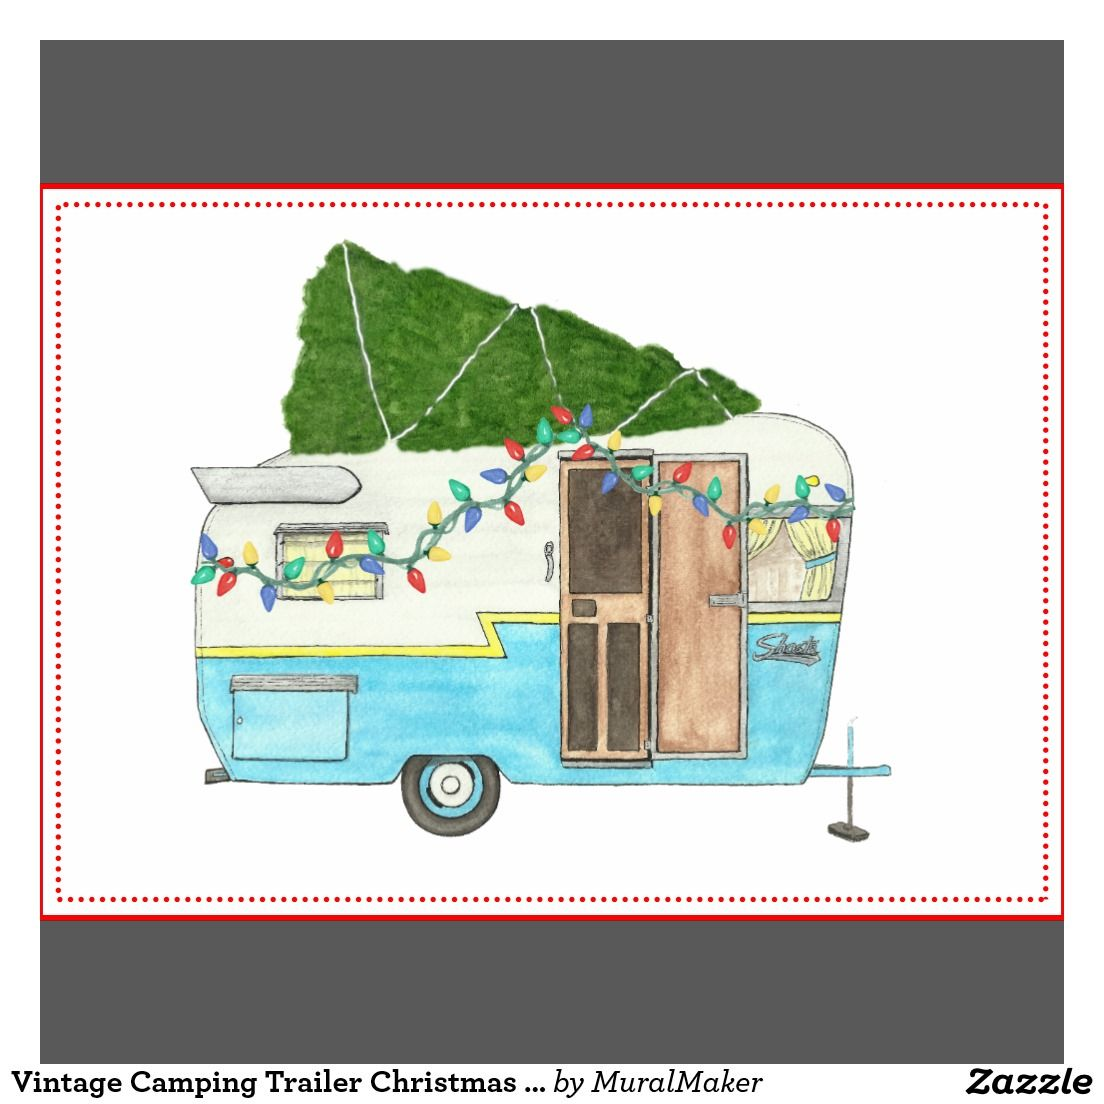 Camping Christmas Cards.Vintage Camping Trailer Christmas Card Zazzle Com Cards